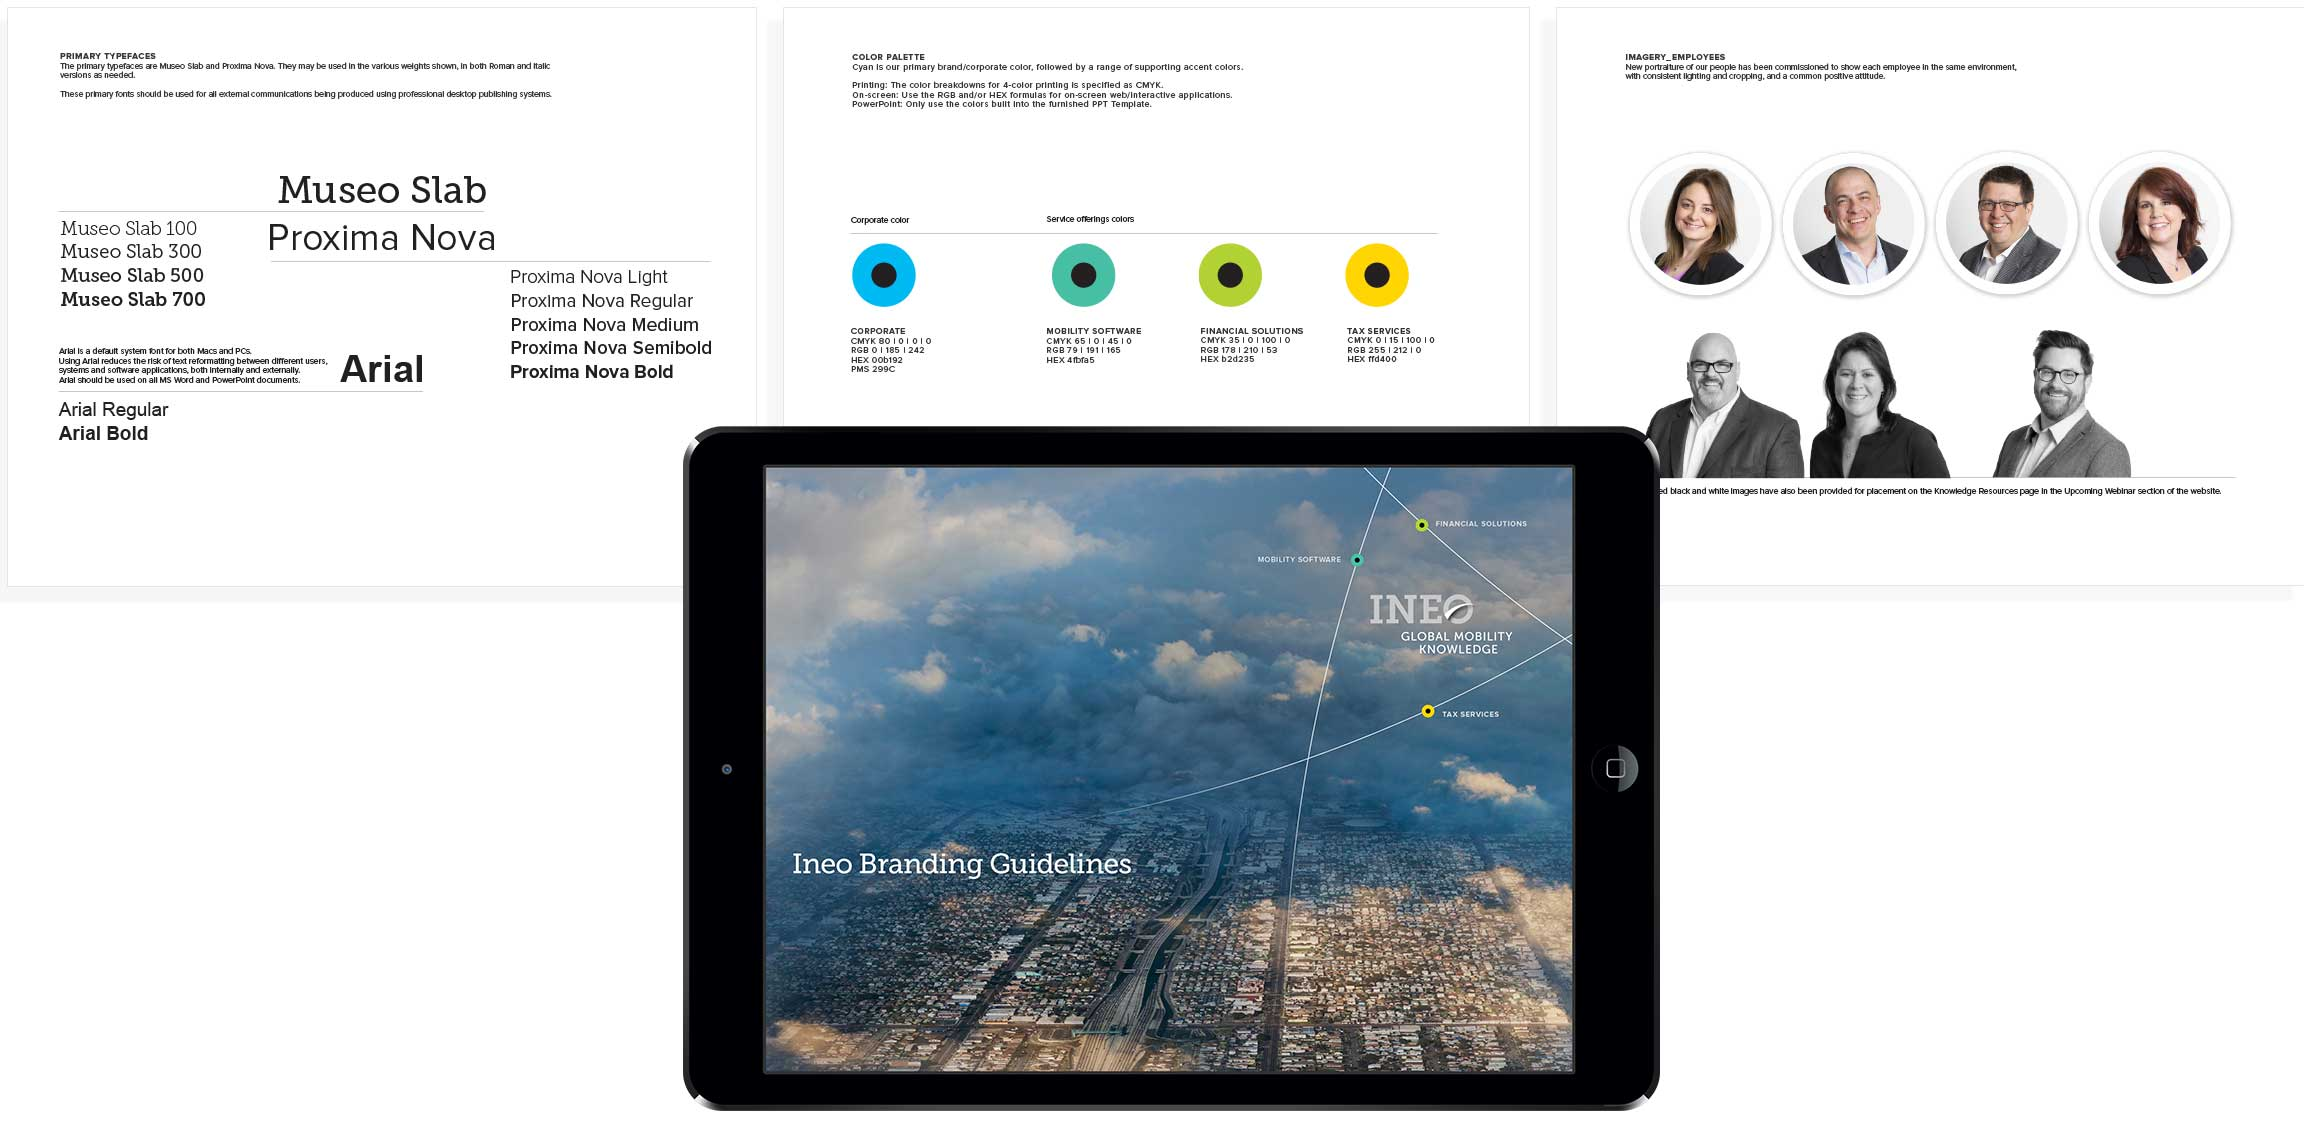 Ineo brand guidelines created as part of the company's strategic brand development.